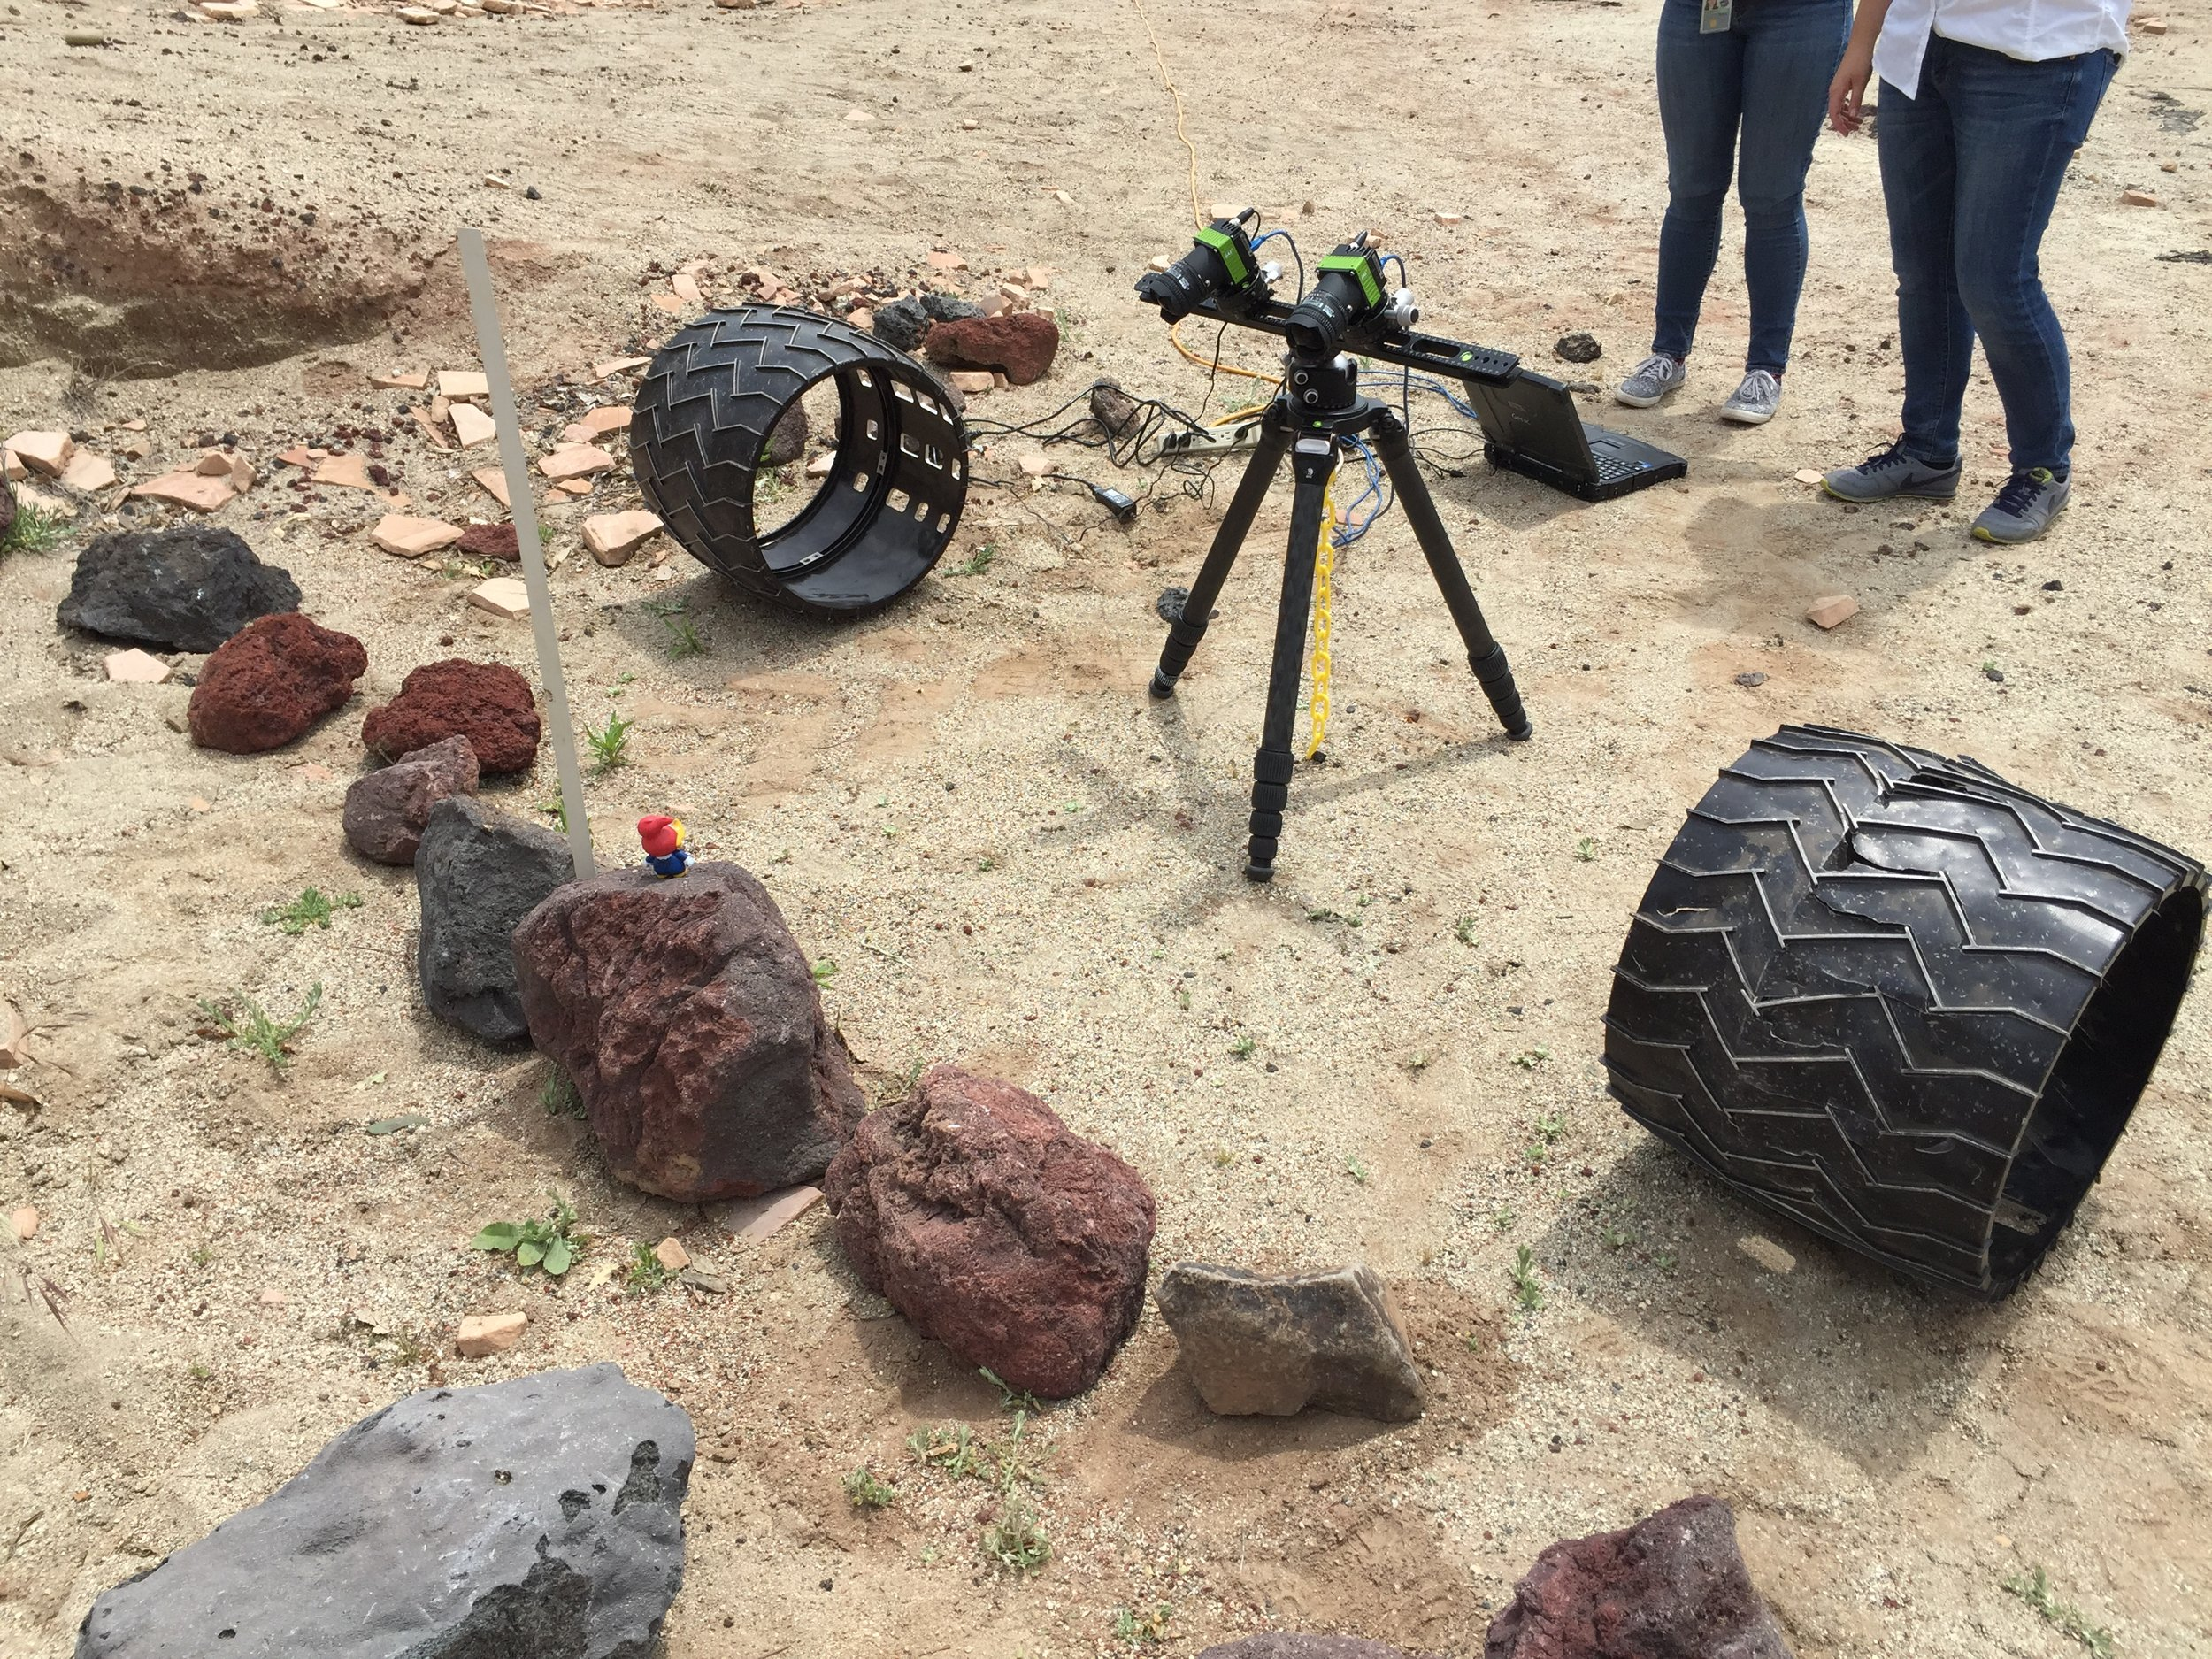 We couldn't use the whole Scarecrow rover during the simulation. However, we only needed the ability to position the wheels safely and capture imagery of the environment for this simulation. So instead, we only placed cameras and wheels within the rover workspace.